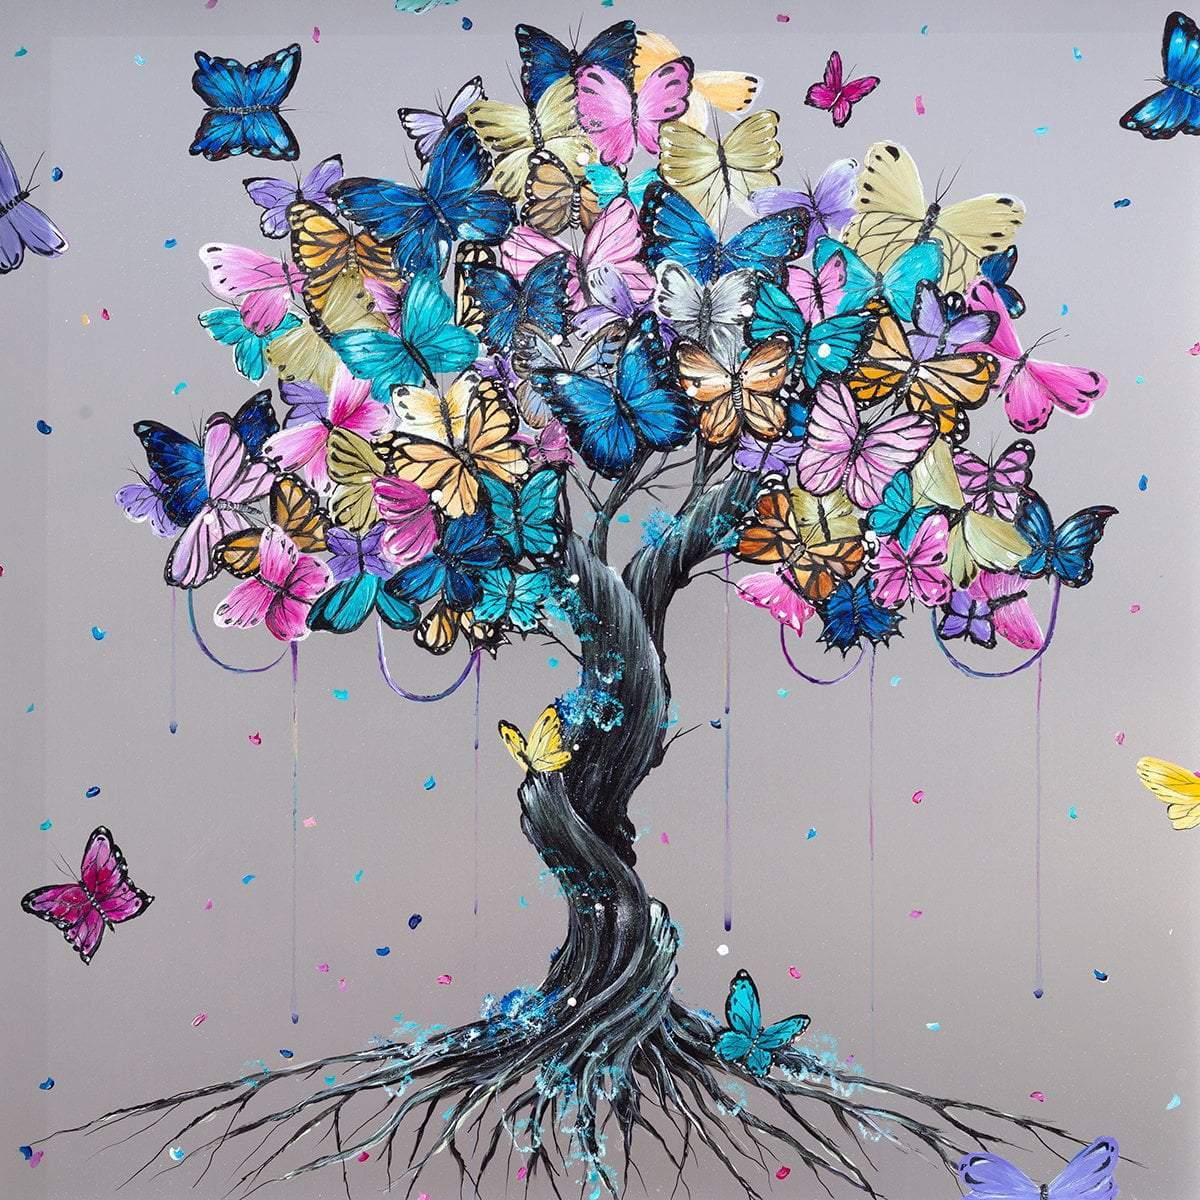 Butterfly Effect - Becky Smith